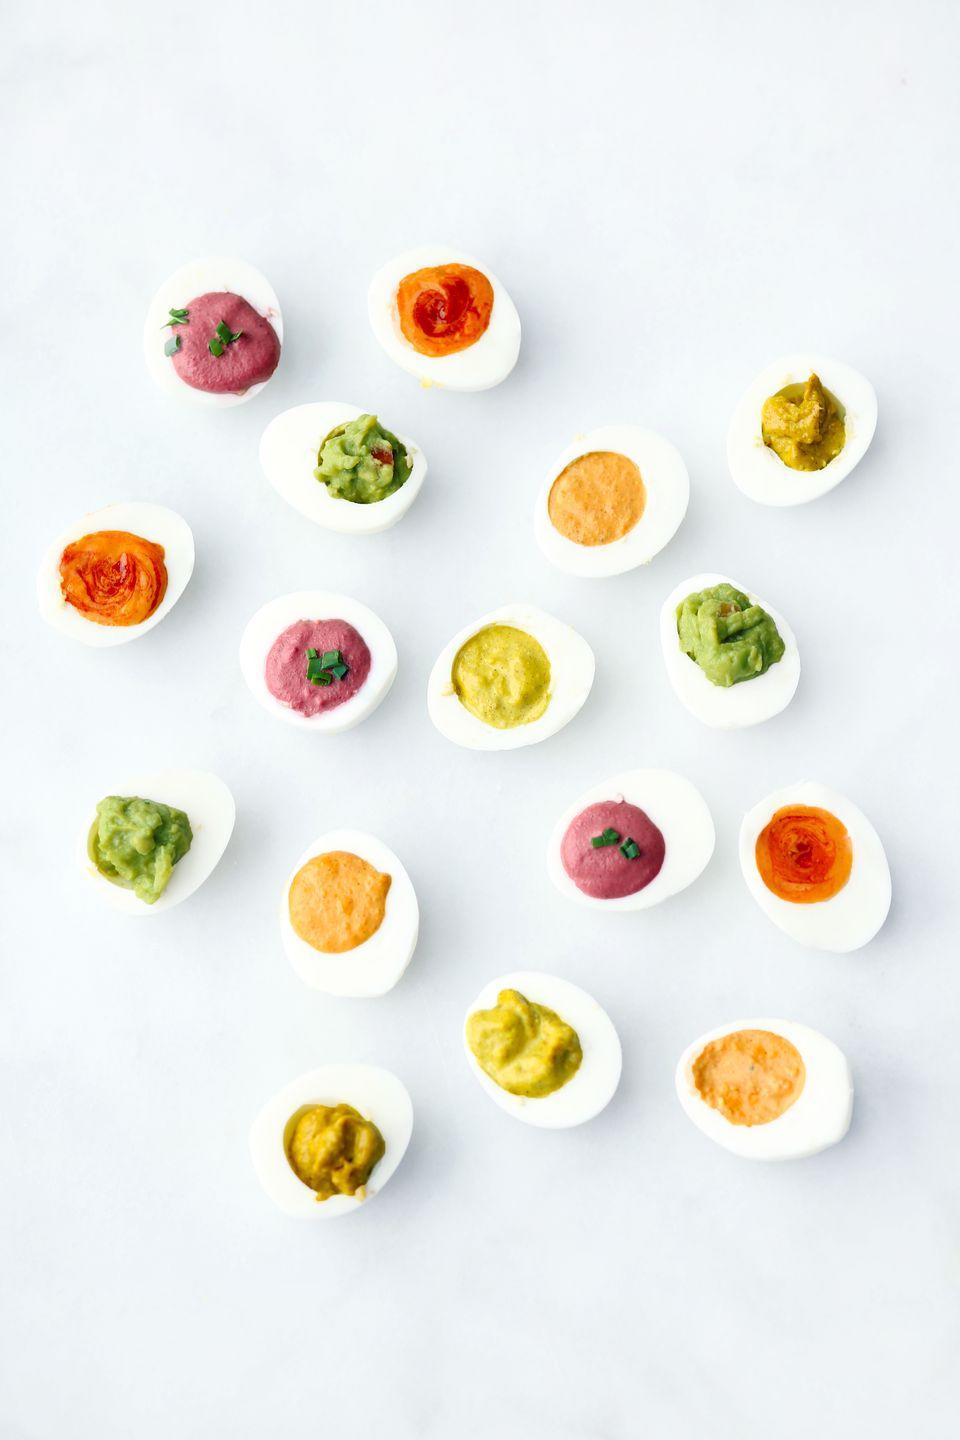 """<p>Of course, <a href=""""https://www.goodhousekeeping.com/food-recipes/easy/g606/deviled-eggs-recipes/"""" rel=""""nofollow noopener"""" target=""""_blank"""" data-ylk=""""slk:deviled eggs"""" class=""""link rapid-noclick-resp"""">deviled eggs</a> are a delightful appetizer. If you make a rainbow out of 'em, they're even better.</p><p><a href=""""https://www.goodhousekeeping.com/food-recipes/easy/videos/a37564/rainbow-colored-deviled-eggs/"""" rel=""""nofollow noopener"""" target=""""_blank"""" data-ylk=""""slk:Get the recipes for Rainbow Deviled Eggs »"""" class=""""link rapid-noclick-resp""""><em>Get the recipes for Rainbow Deviled Eggs »</em></a></p>"""